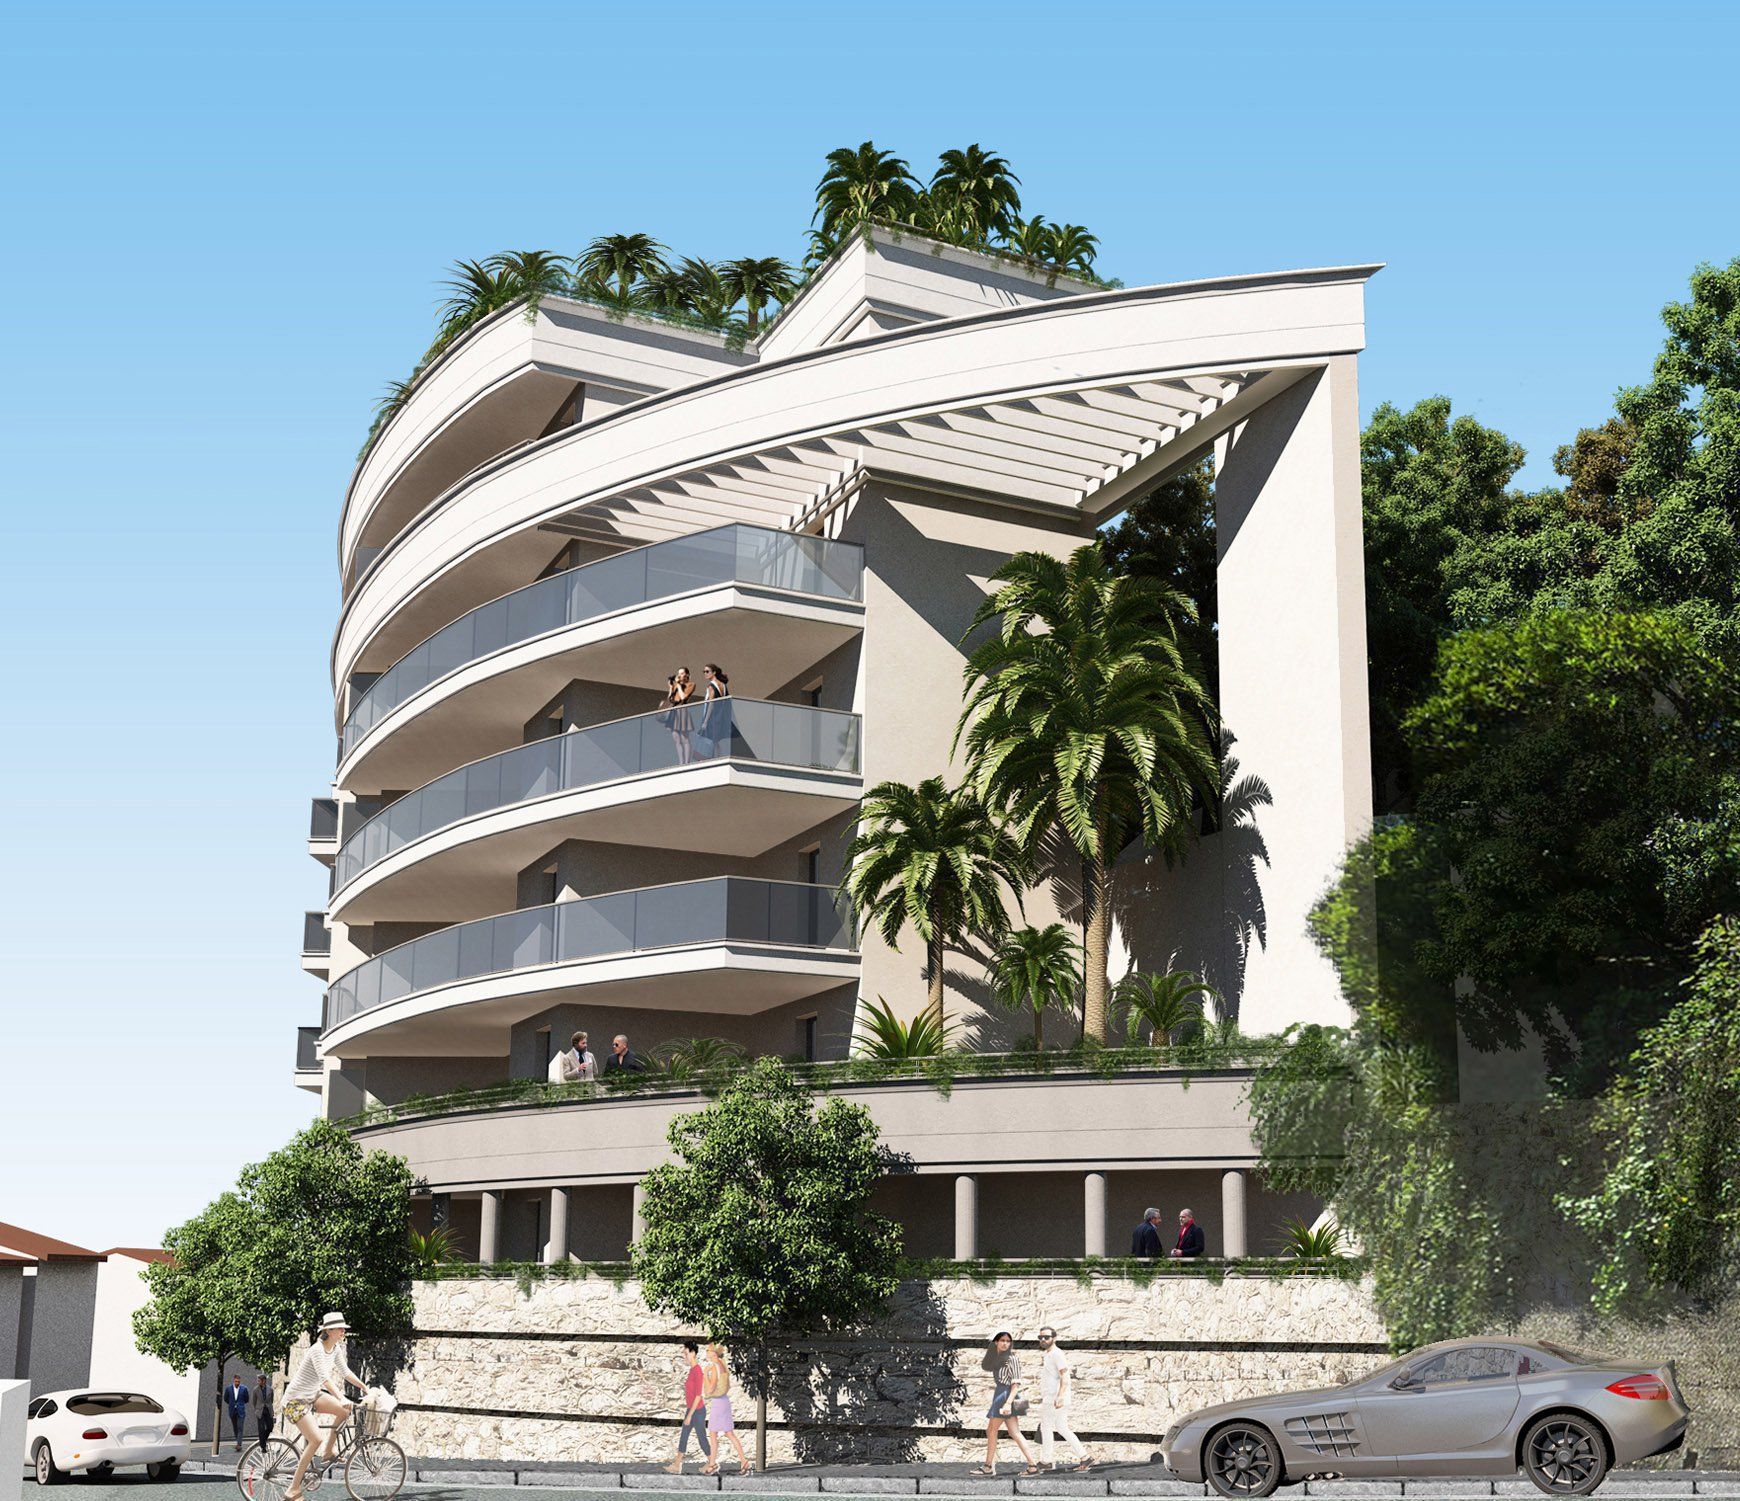 BEAUSOLEIL - Frecnh Riviera - Luxury 2 Bed - Sea view and large terrace